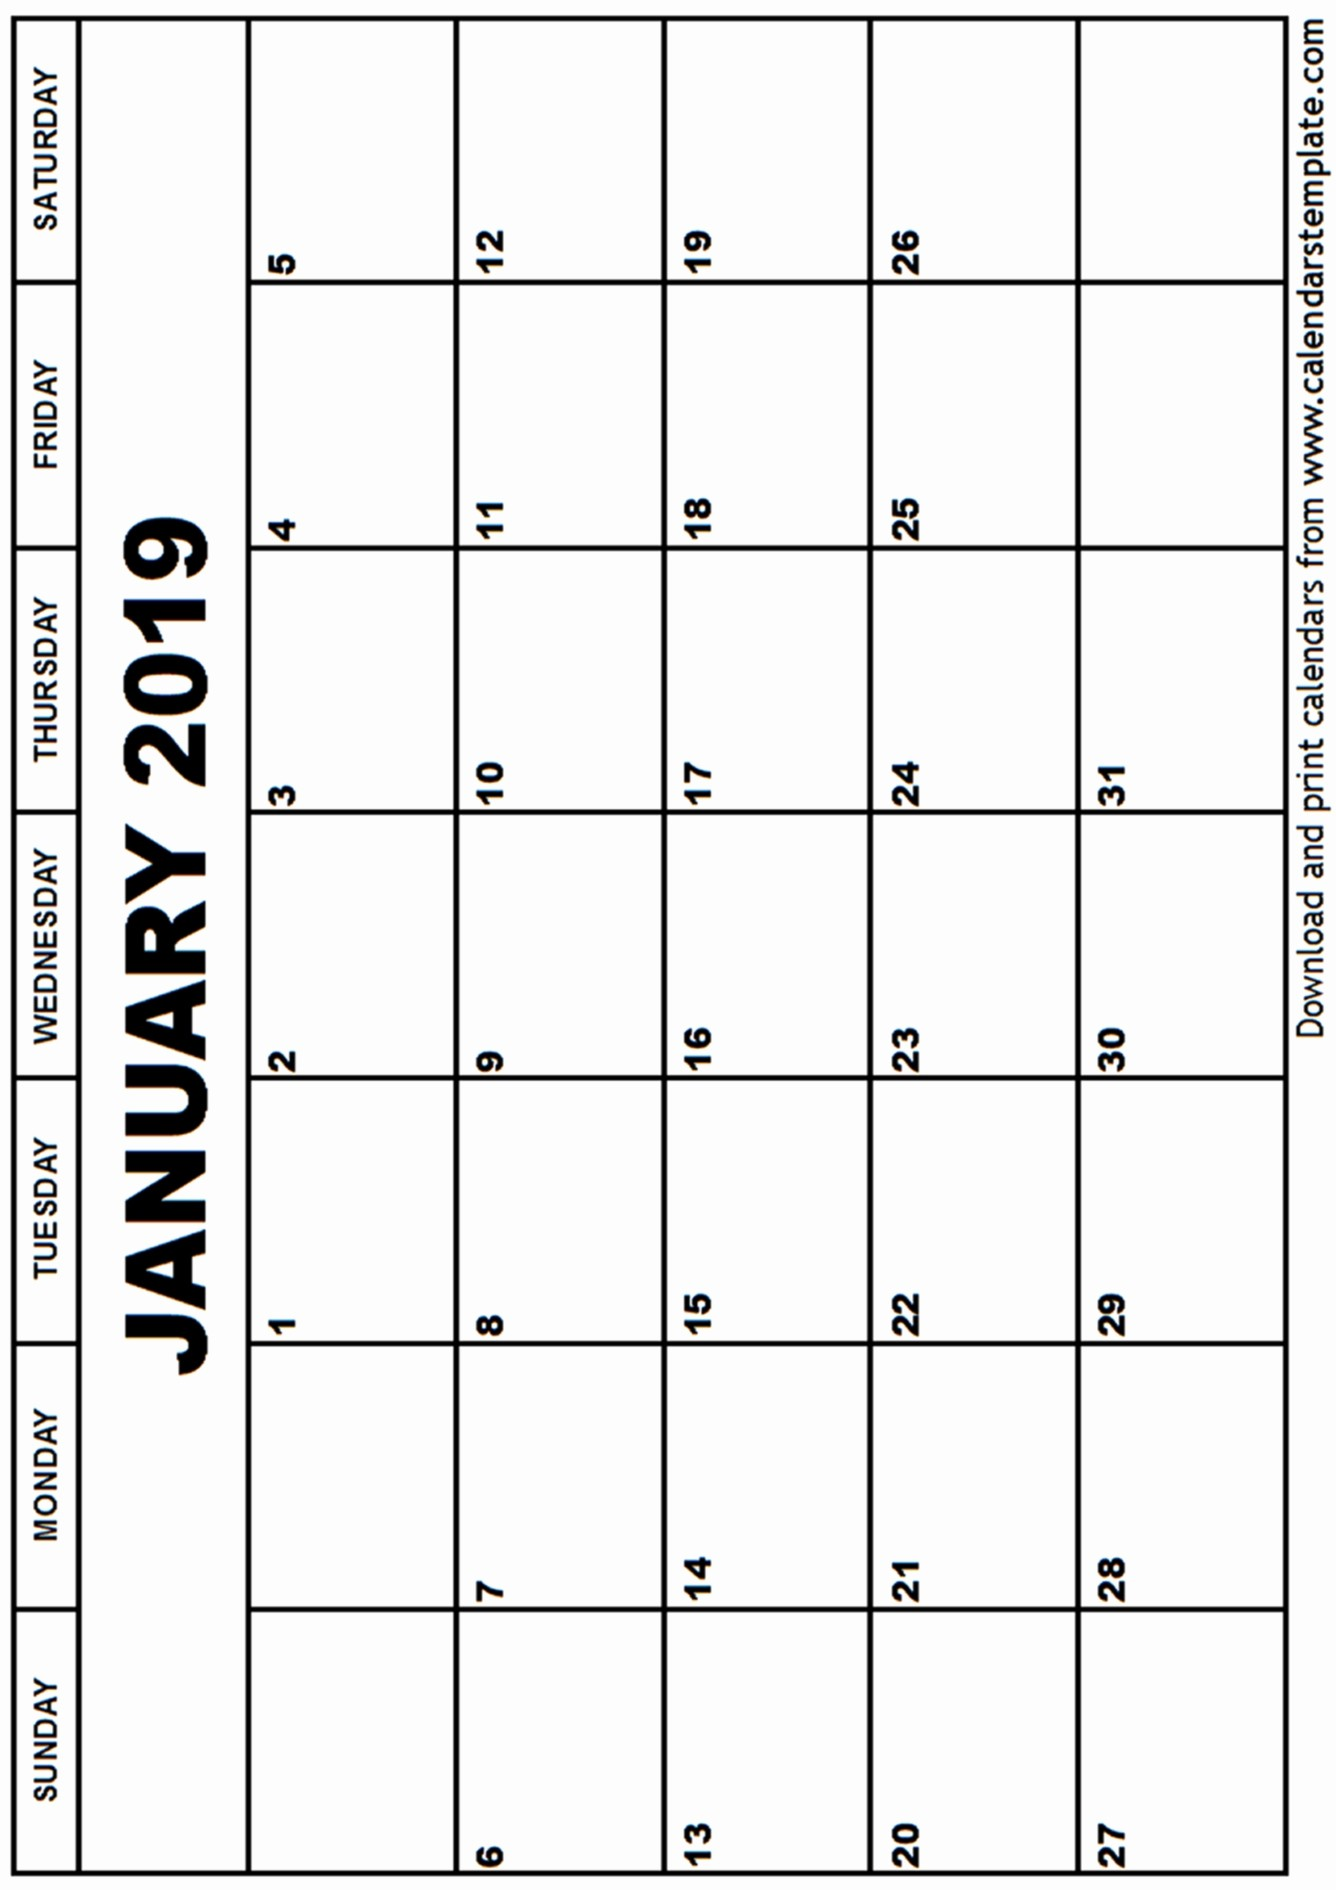 Blank January 2019 Calendar Template Beautiful January 2019 Calendar Template